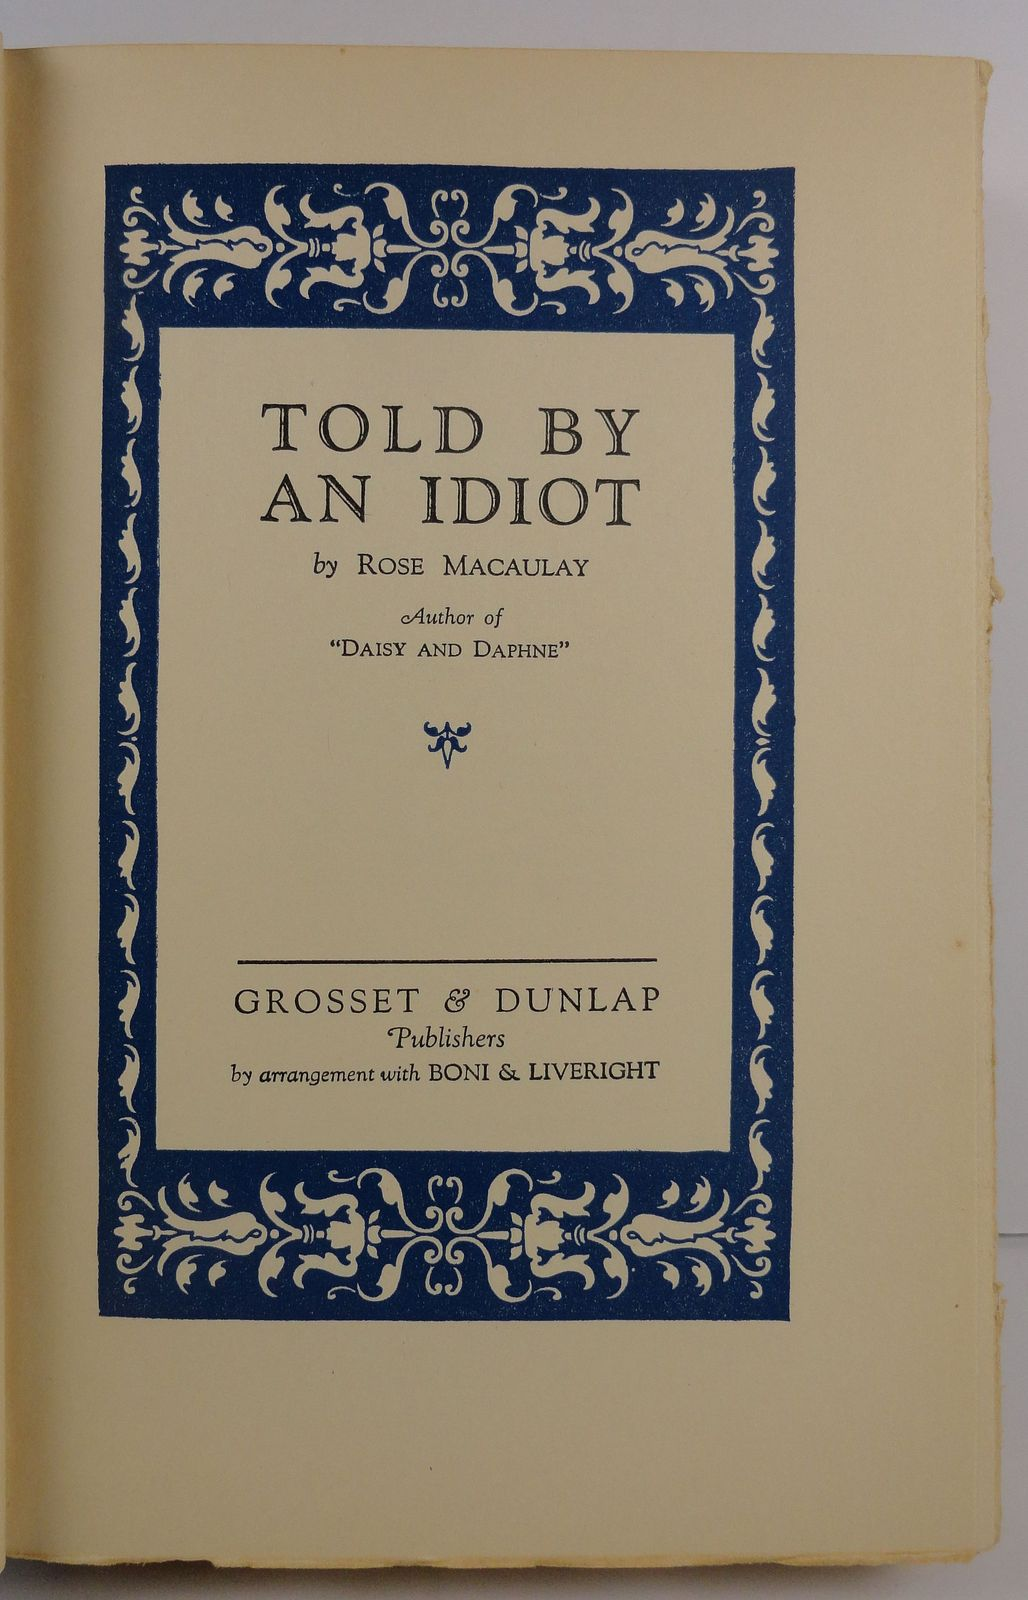 Told by an Idiot by Rose Macaulay 1925 Grosset and Dunlap